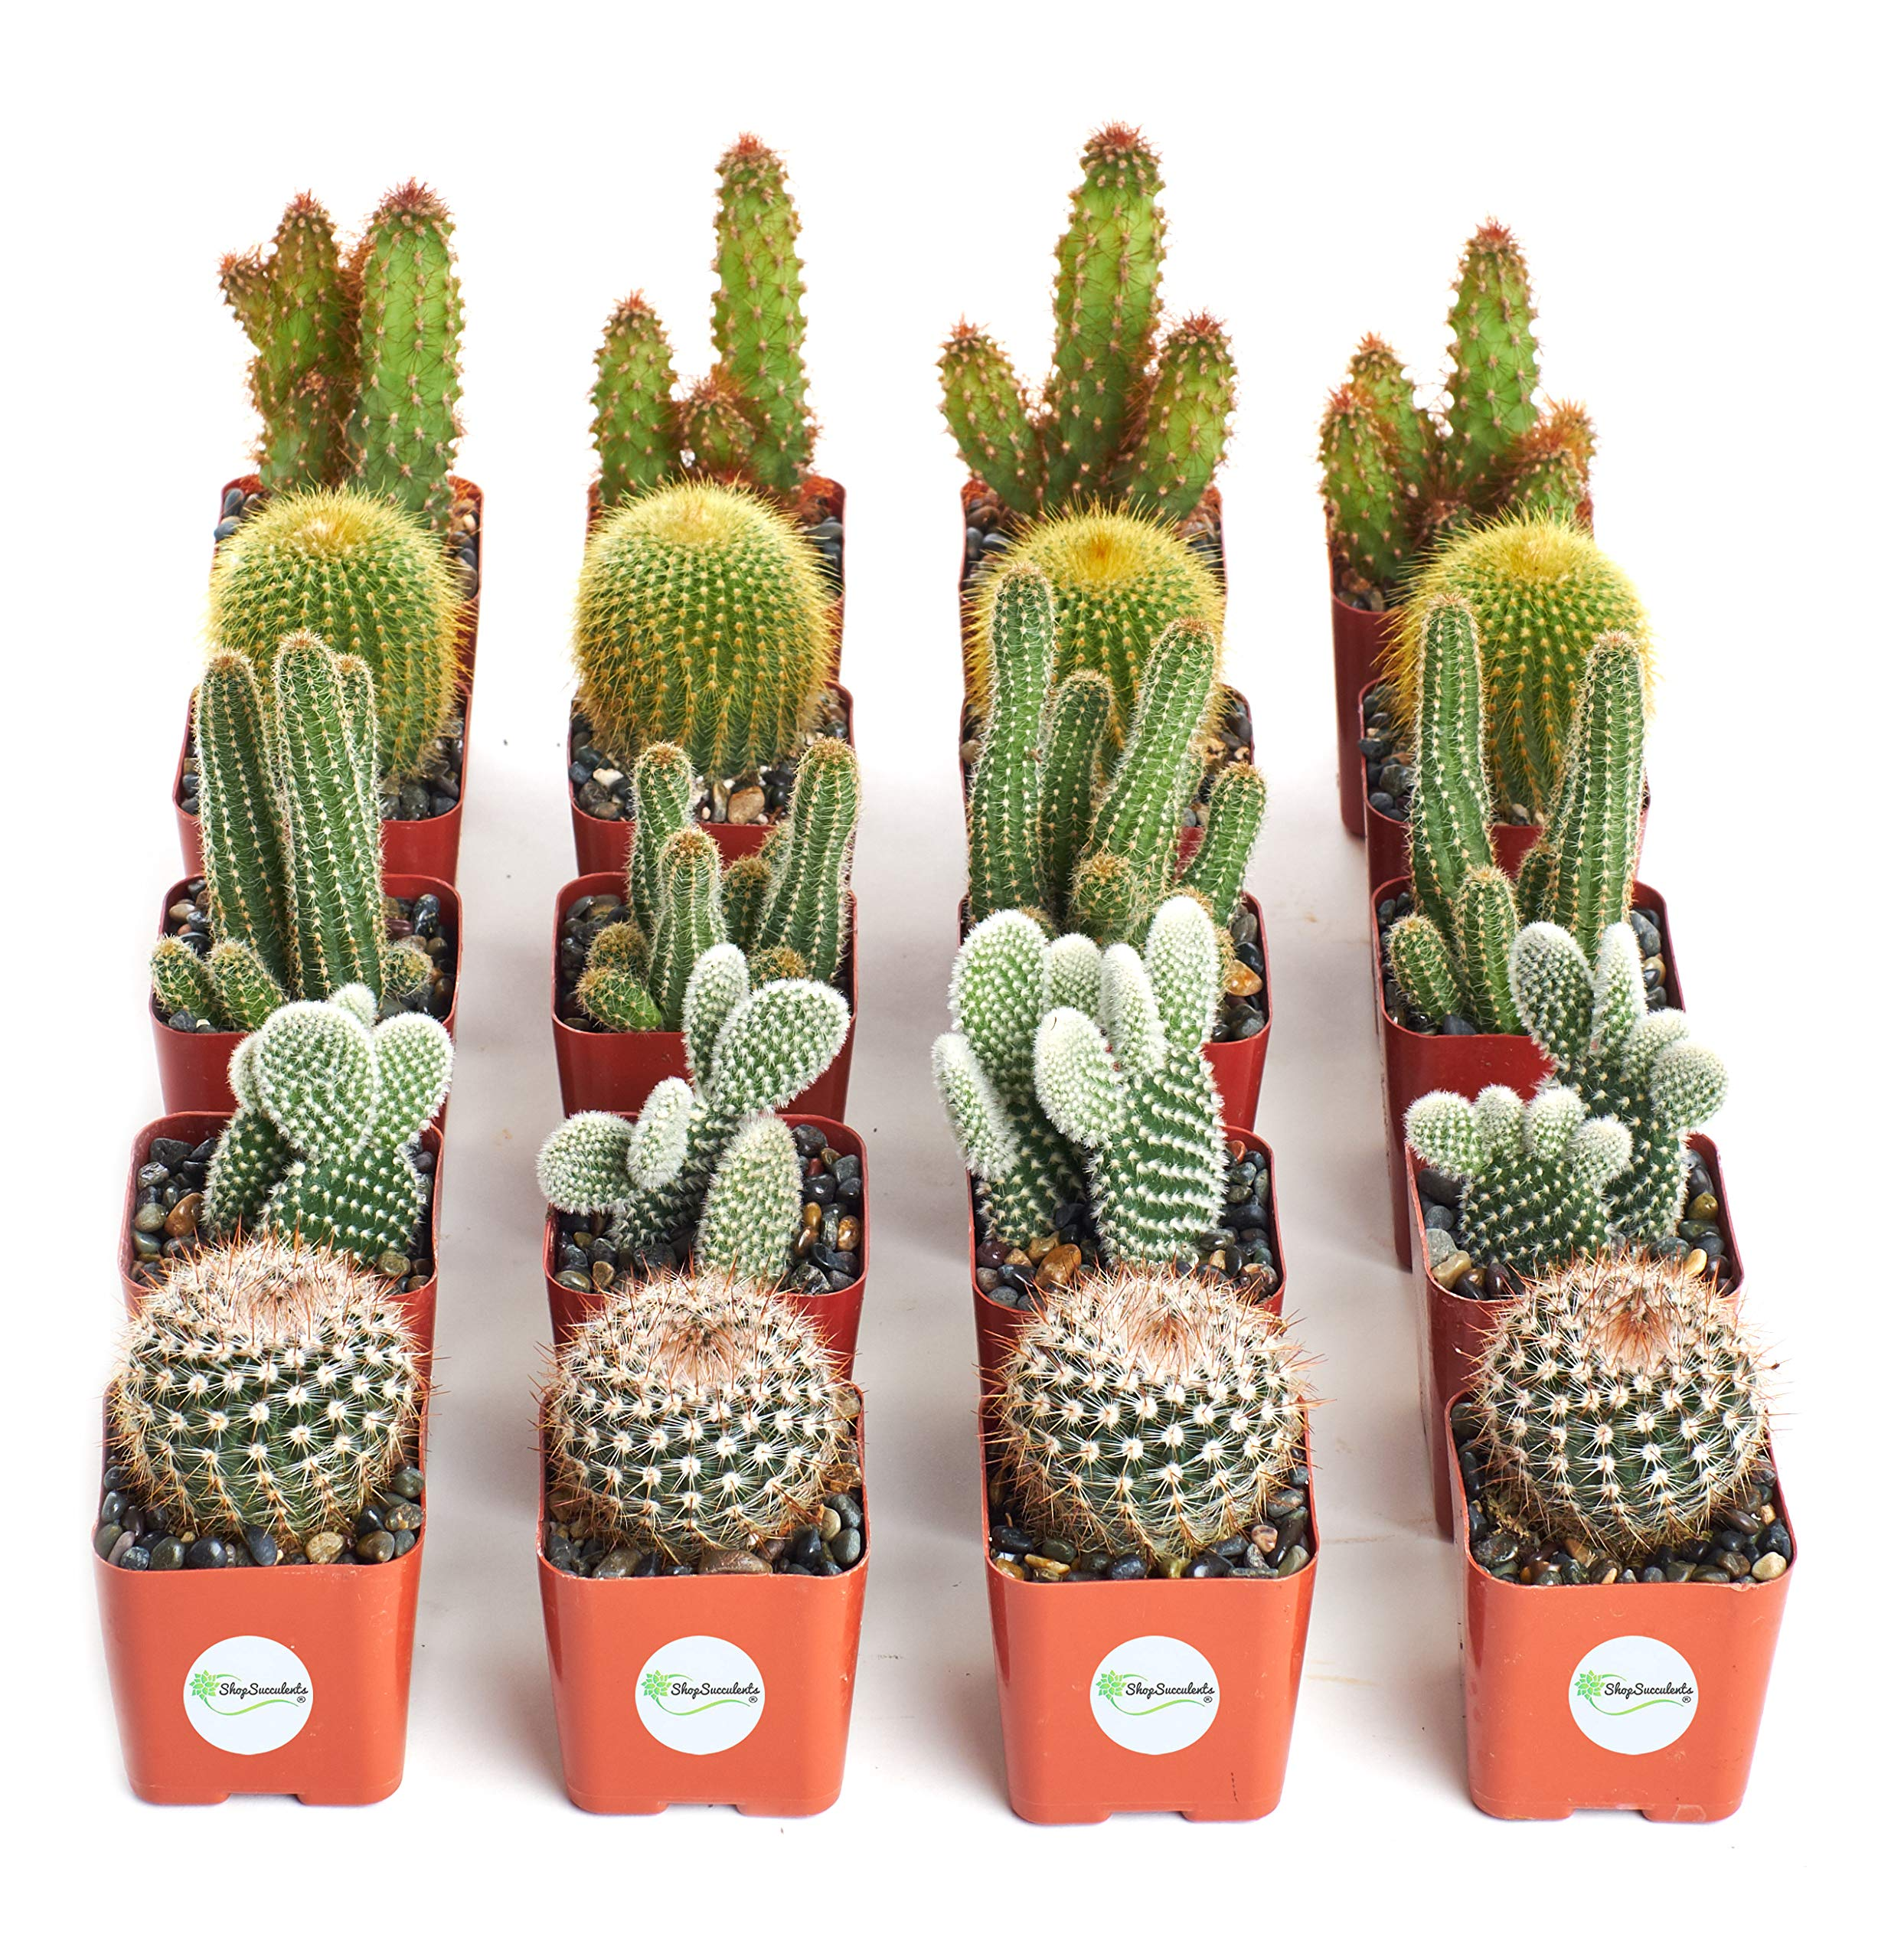 Shop Succulents | Cool Cactus Collection of Live Succulent Plants, Hand Selected Variety Pack of Cacti | Collection of 20